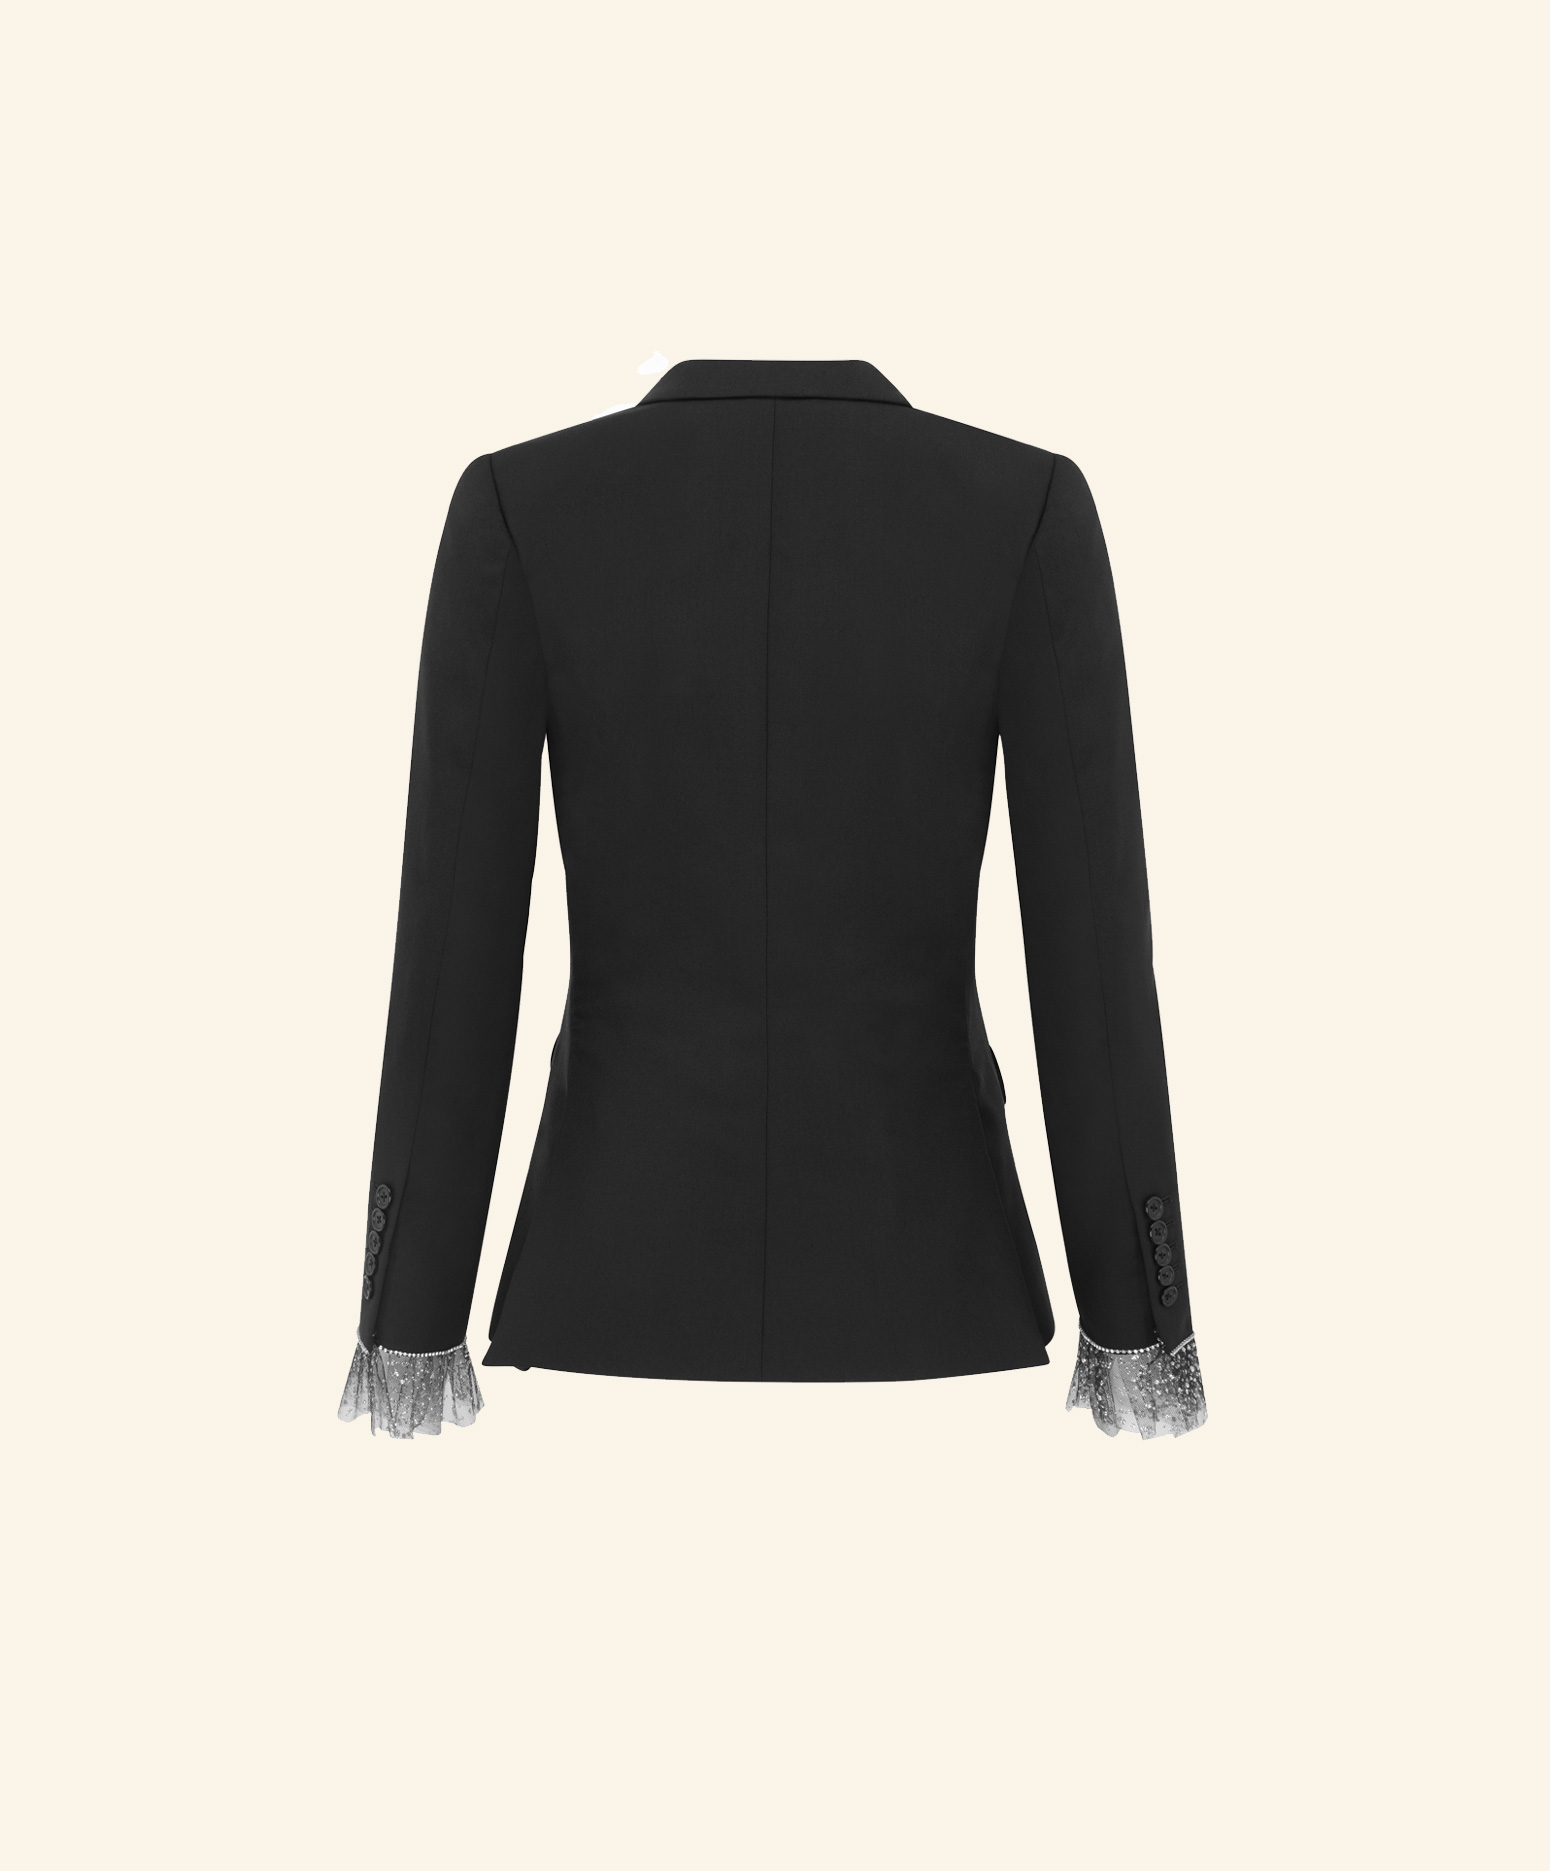 https://www.sannelondon.com/wp-content/uploads/2019/06/blazer-netted-cuffs-bk.jpg